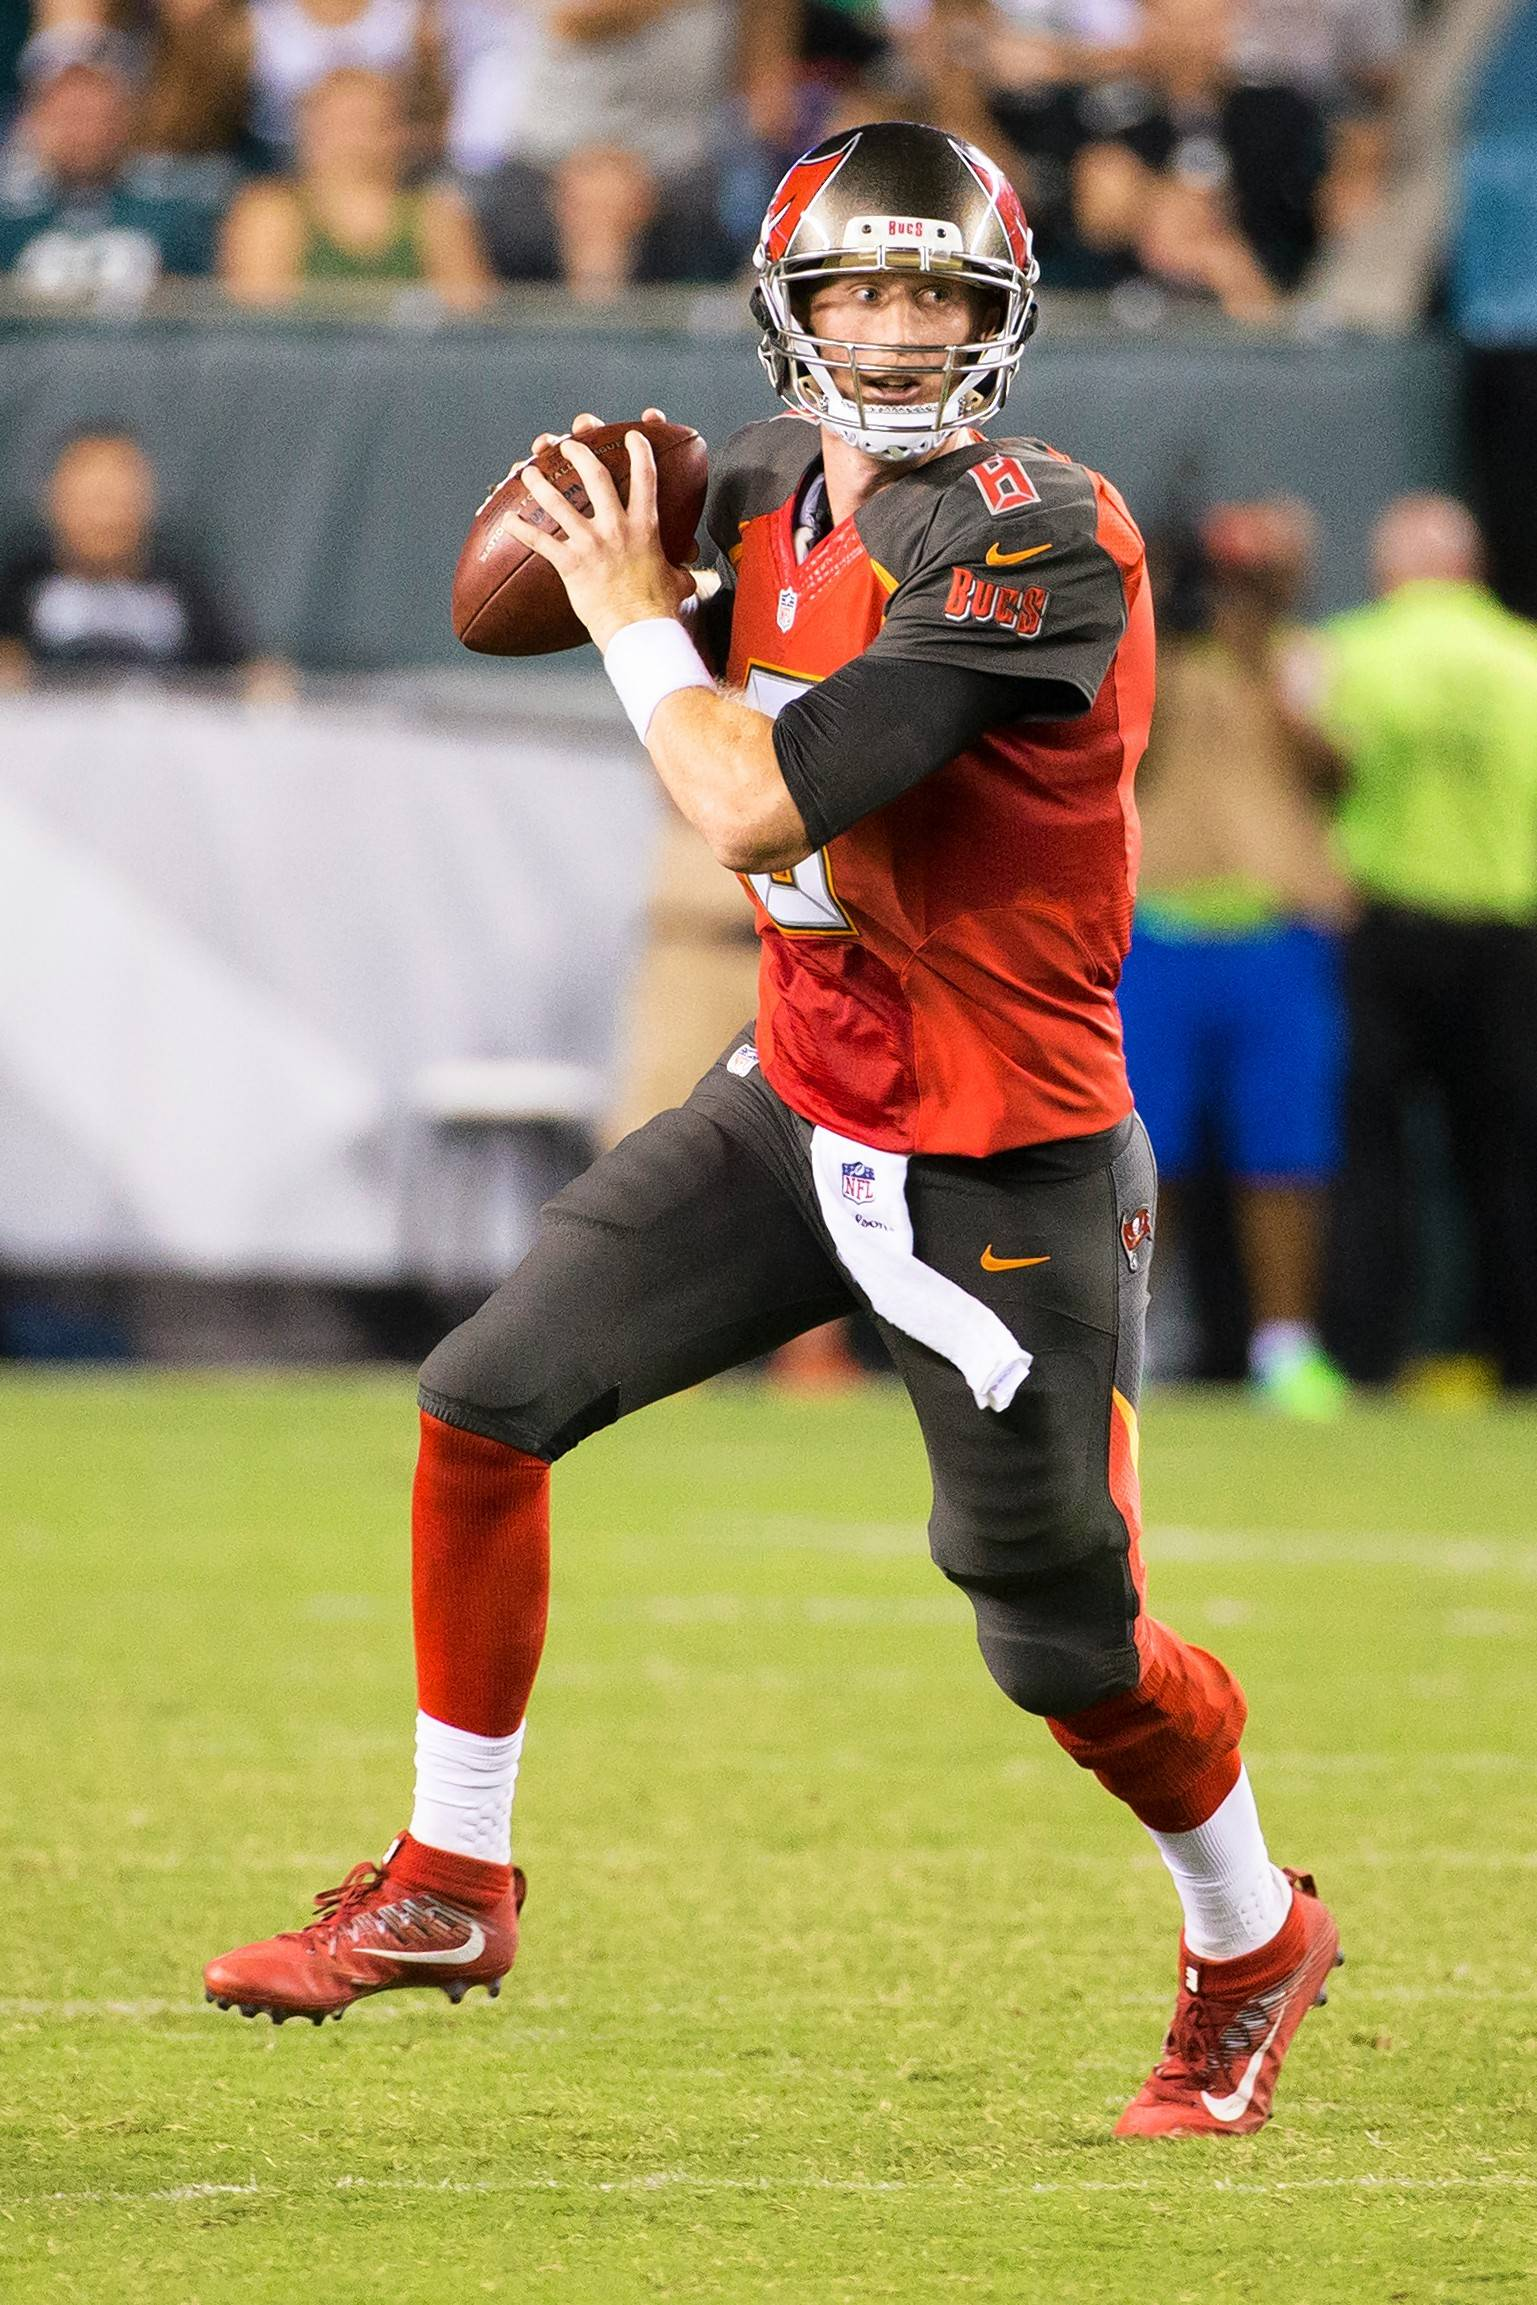 Glennon's future tied to Bears' draft decision